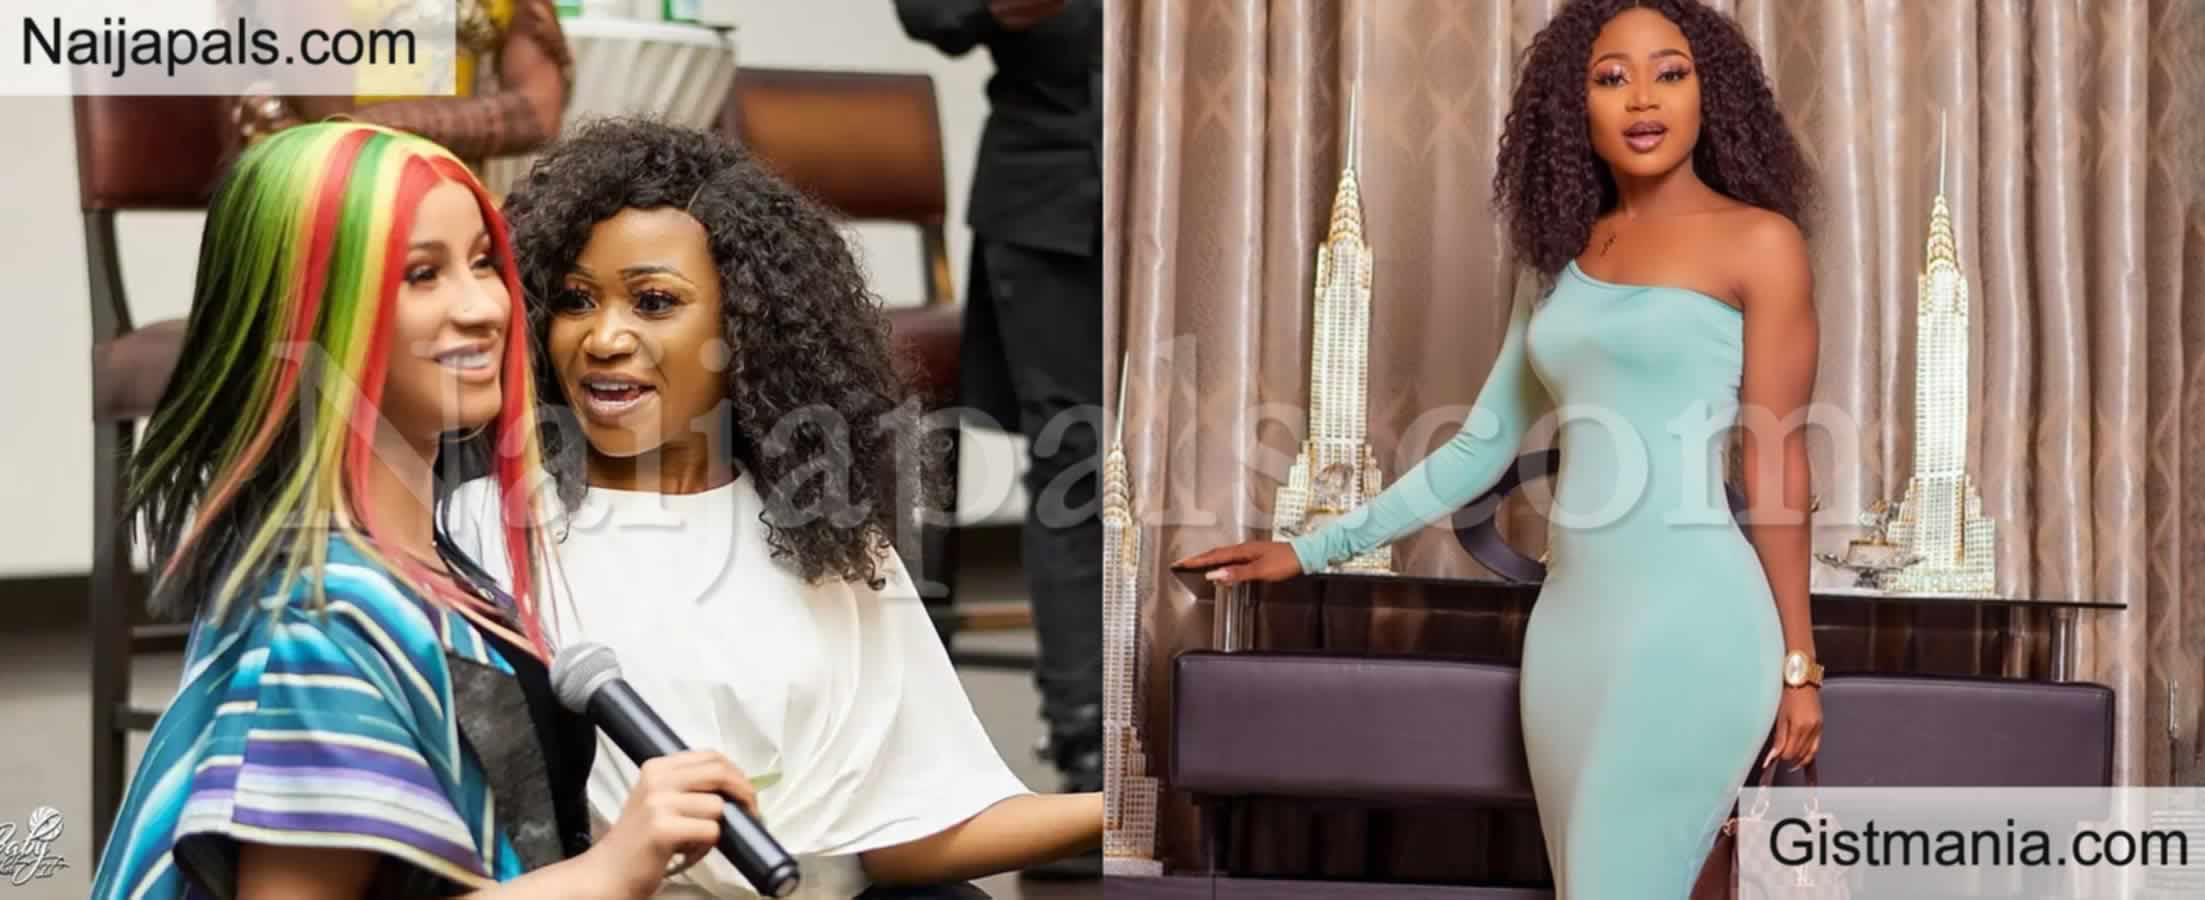 <img alt='.' class='lazyload' data-src='https://img.gistmania.com/emot/smh.gif' /> SMH! Ghanaian Actress<b> Akuapem Poloo, Shed Tears As Cardi B Viewed Her Instagram Stories</b>